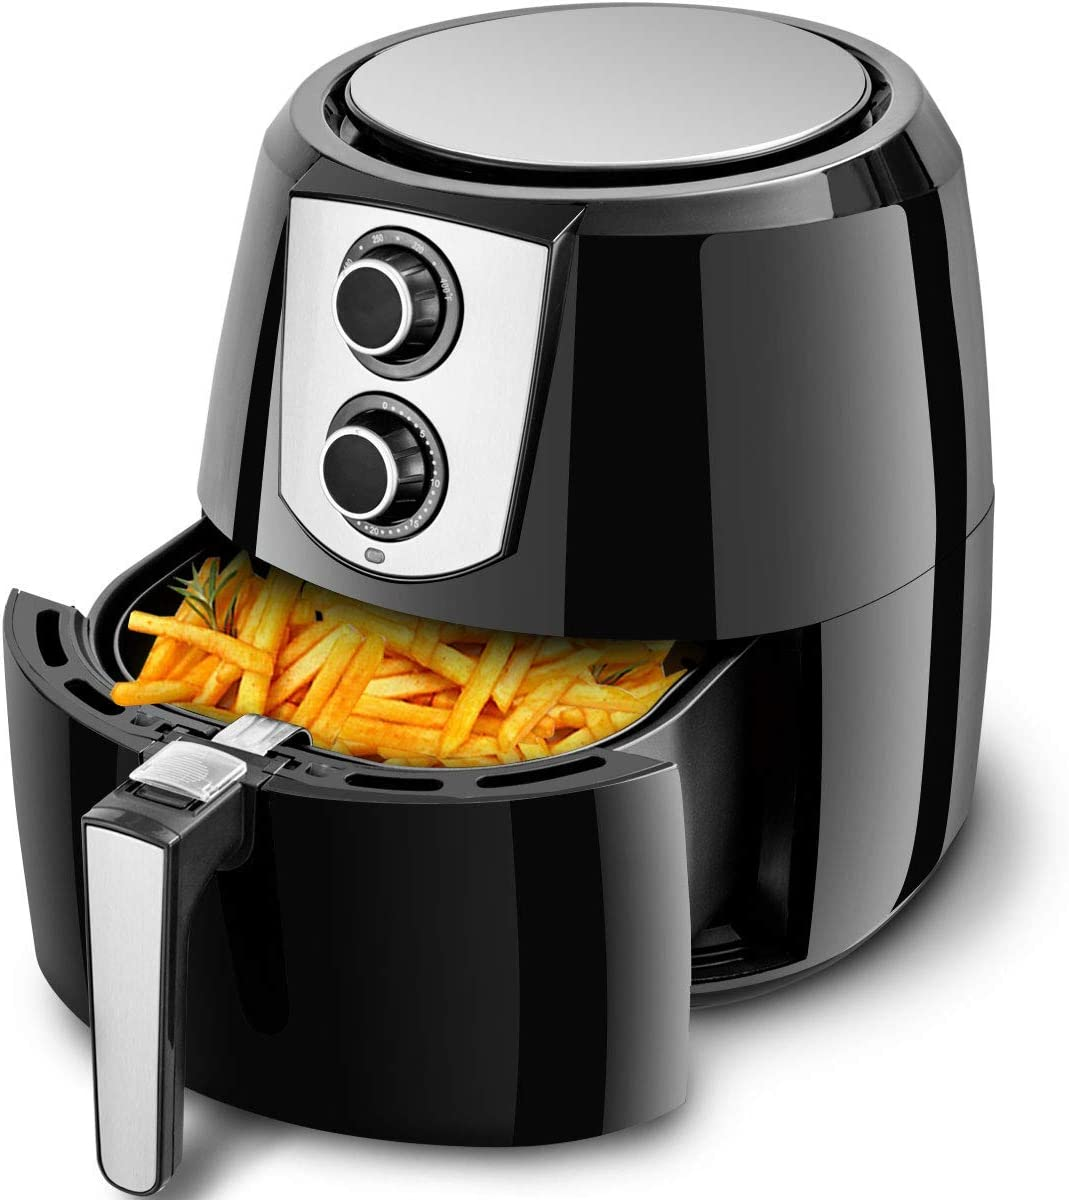 Costzon Air Fryer, UL Certified, Extra Large Capacity 5.5 Quart 1800W Electric Hot Air Fryer, Dishwasher Non-Stick Fry Basket, Auto Shut Off Knob Control